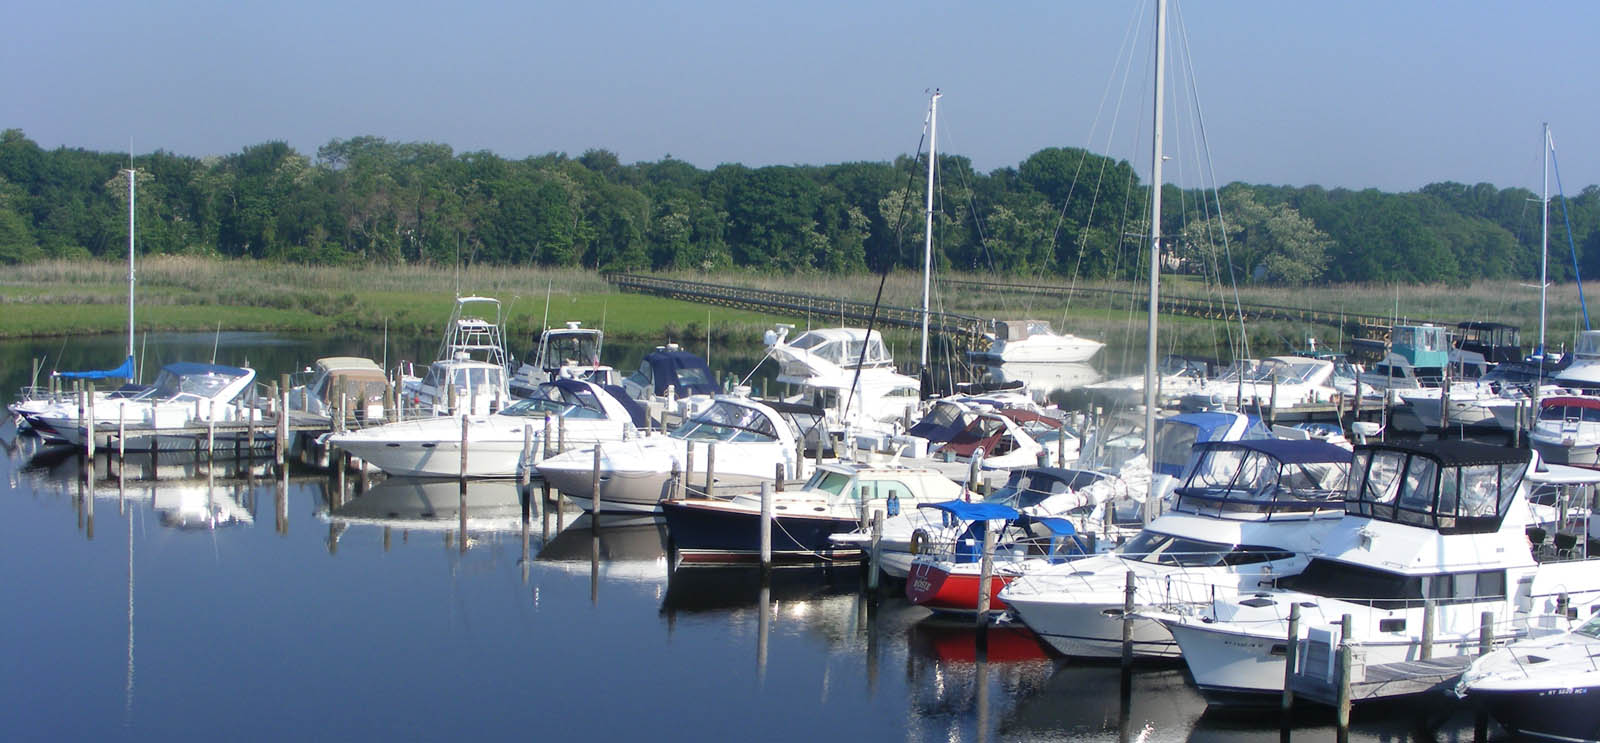 Boats docked at East Patchogue NY Marina